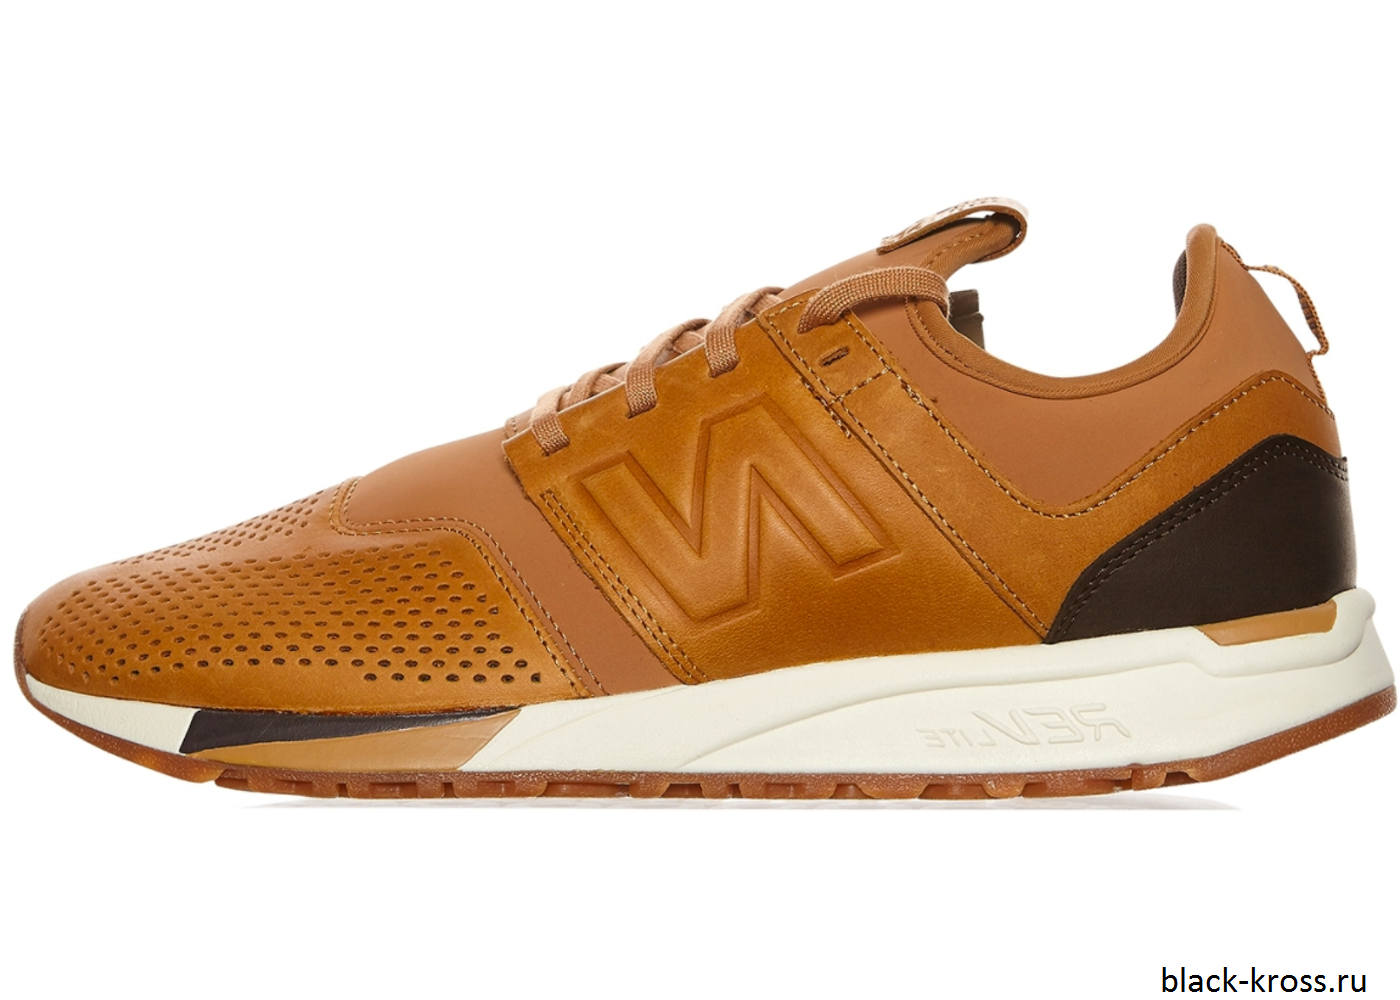 New-Balance-247-Brown-Luxe